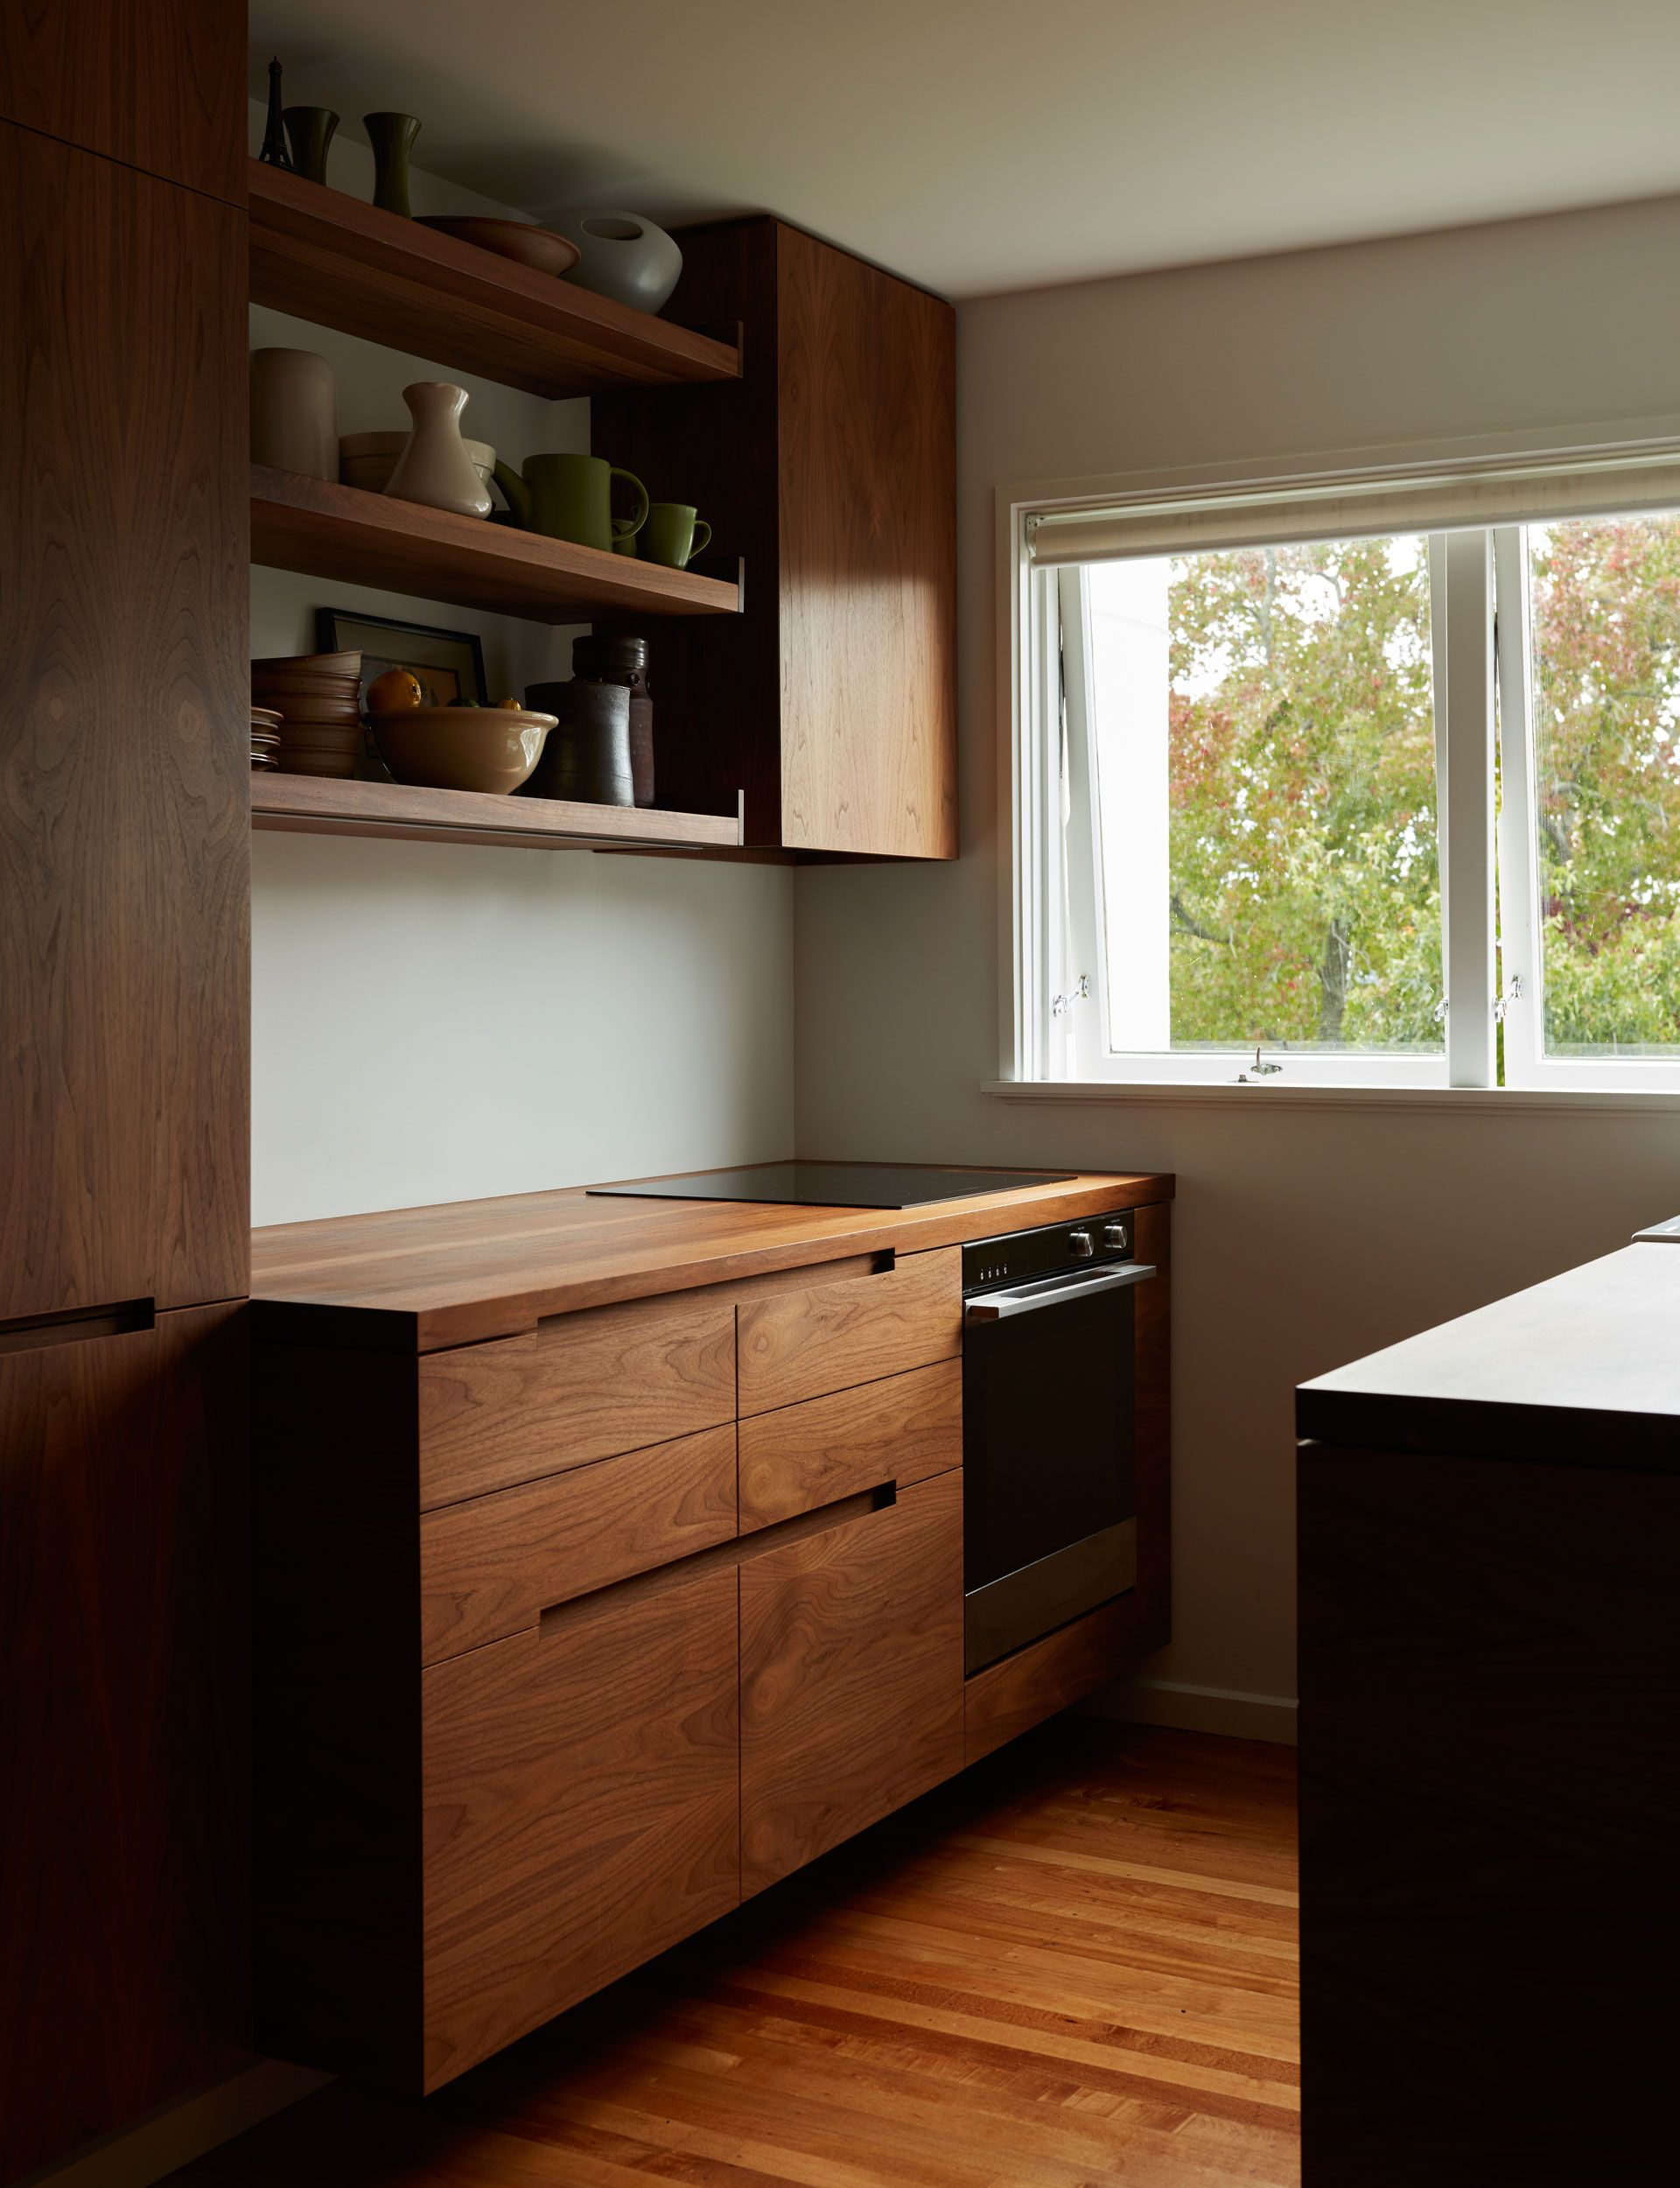 A small apartment kitchen is redesigned with rich walnut cabinetry